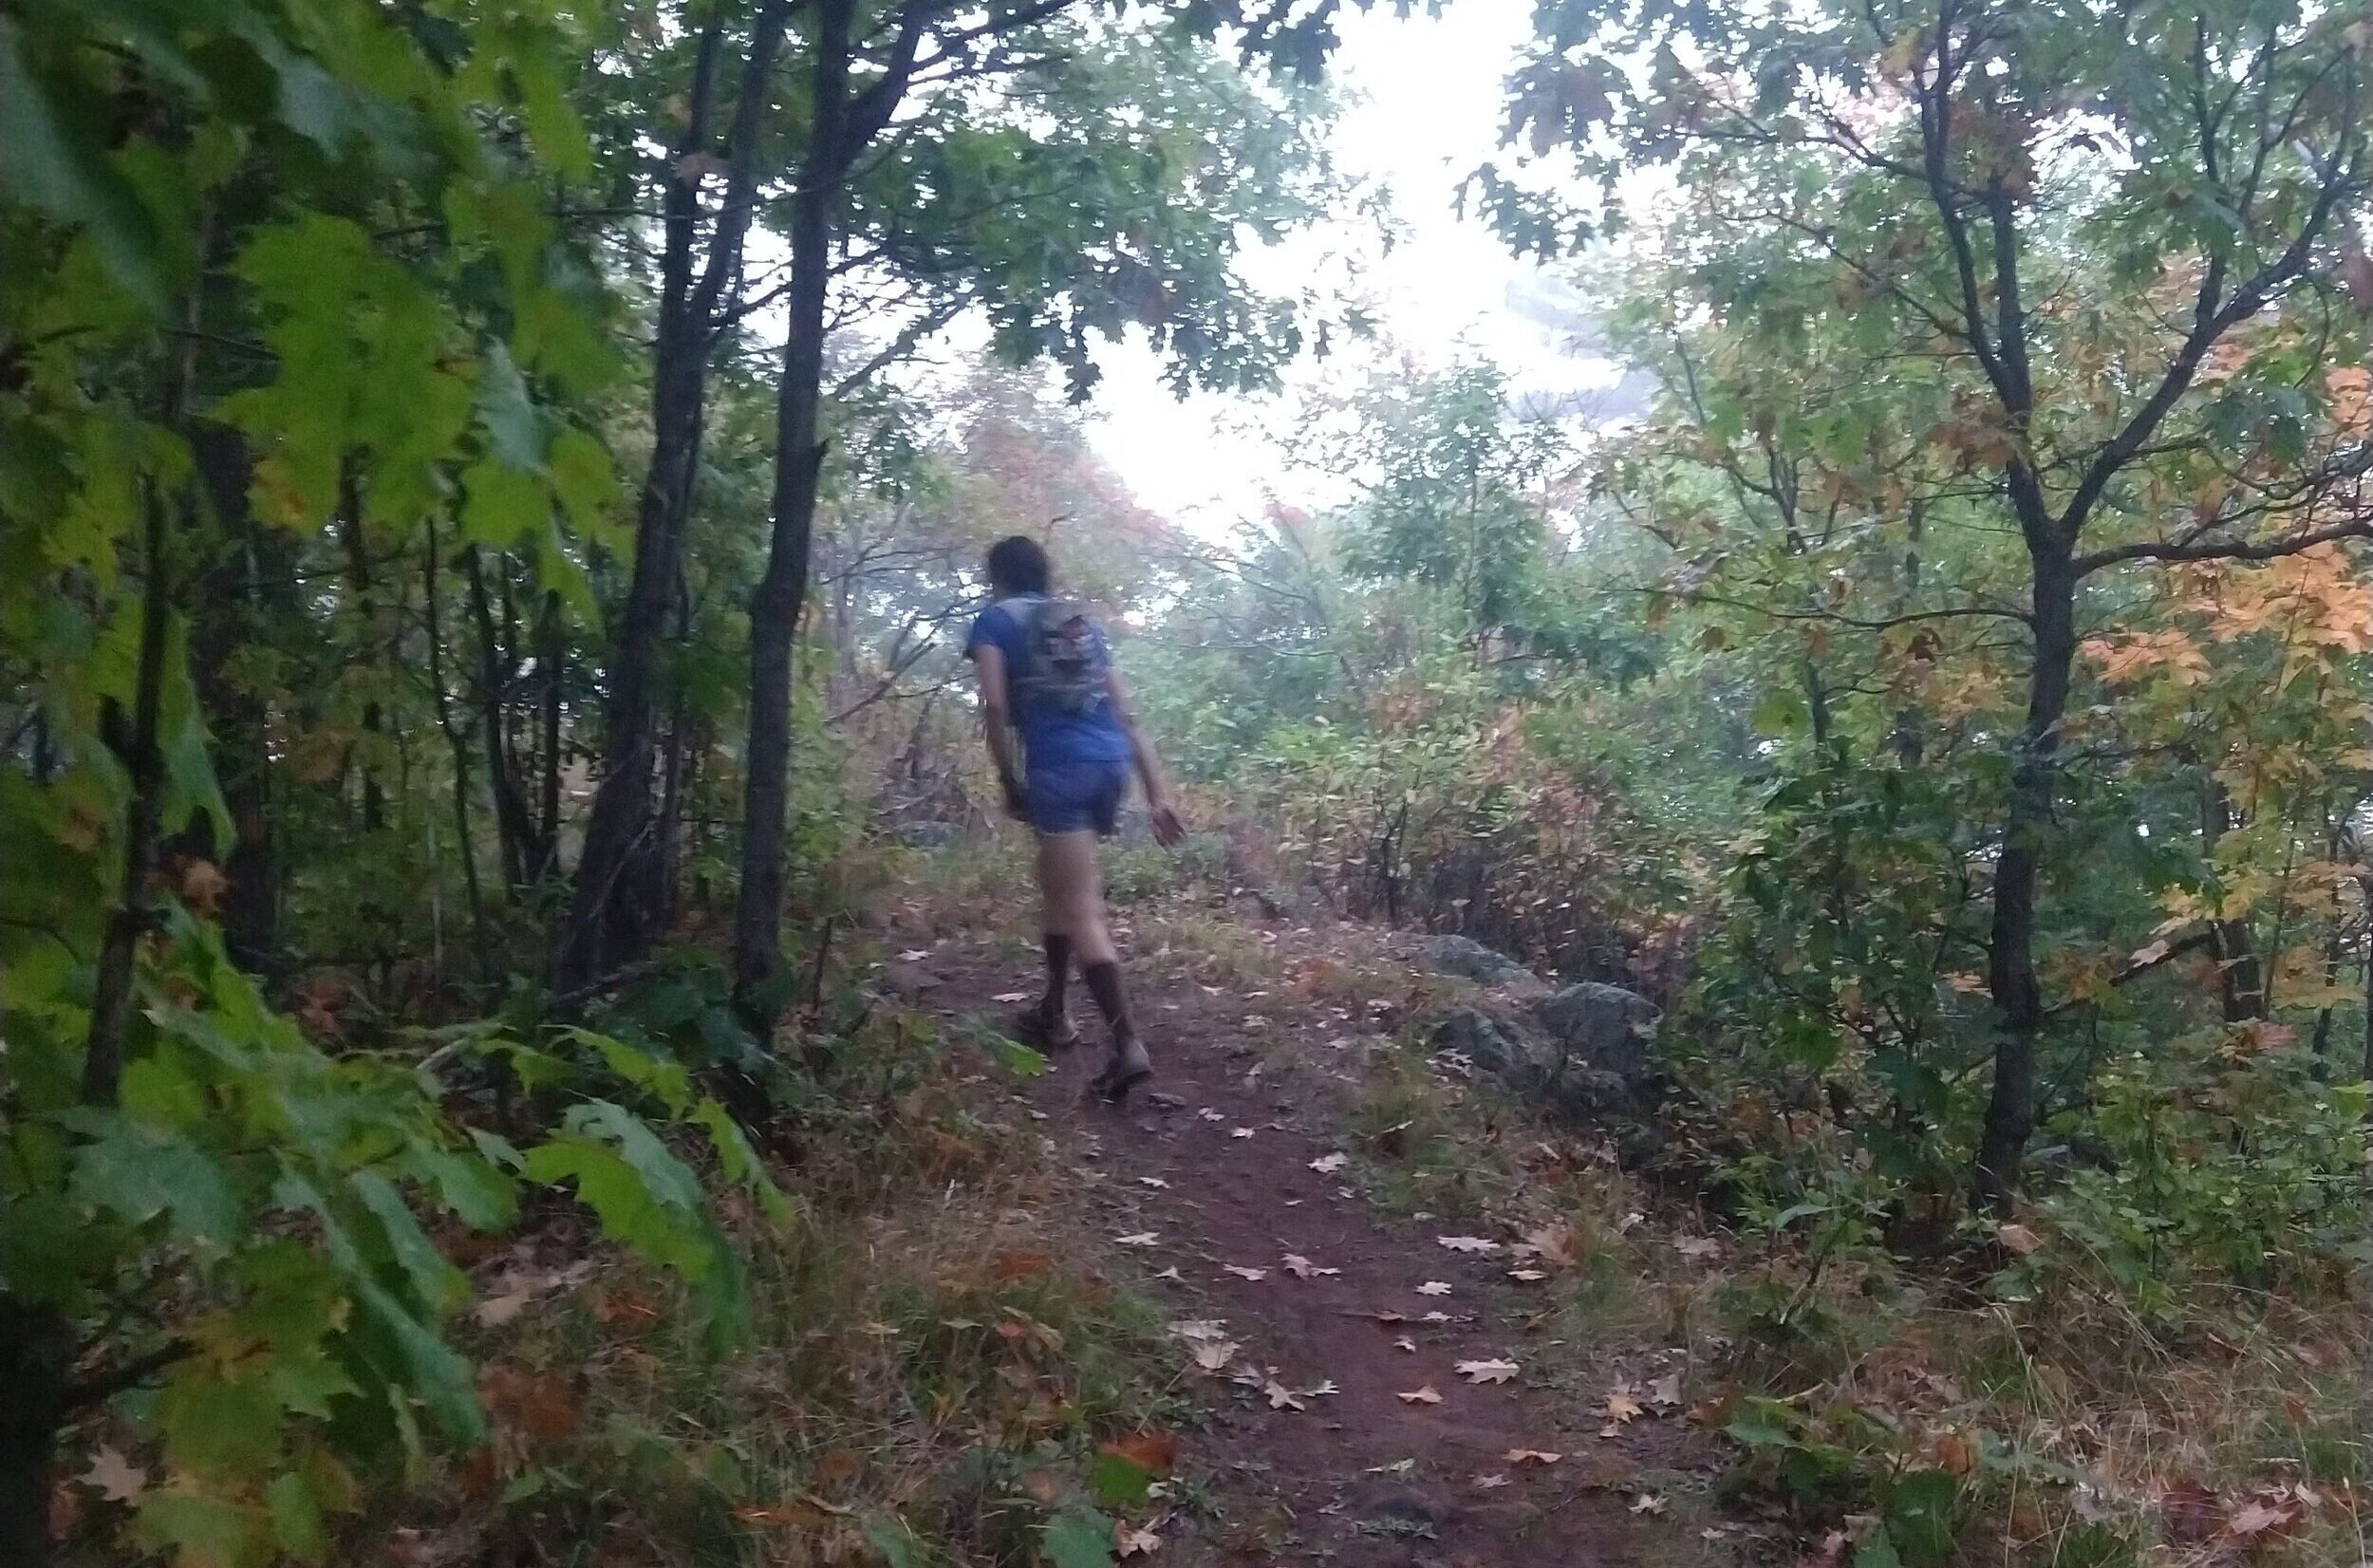 Nearly the entire race was on scenic trails with challenging terrain.